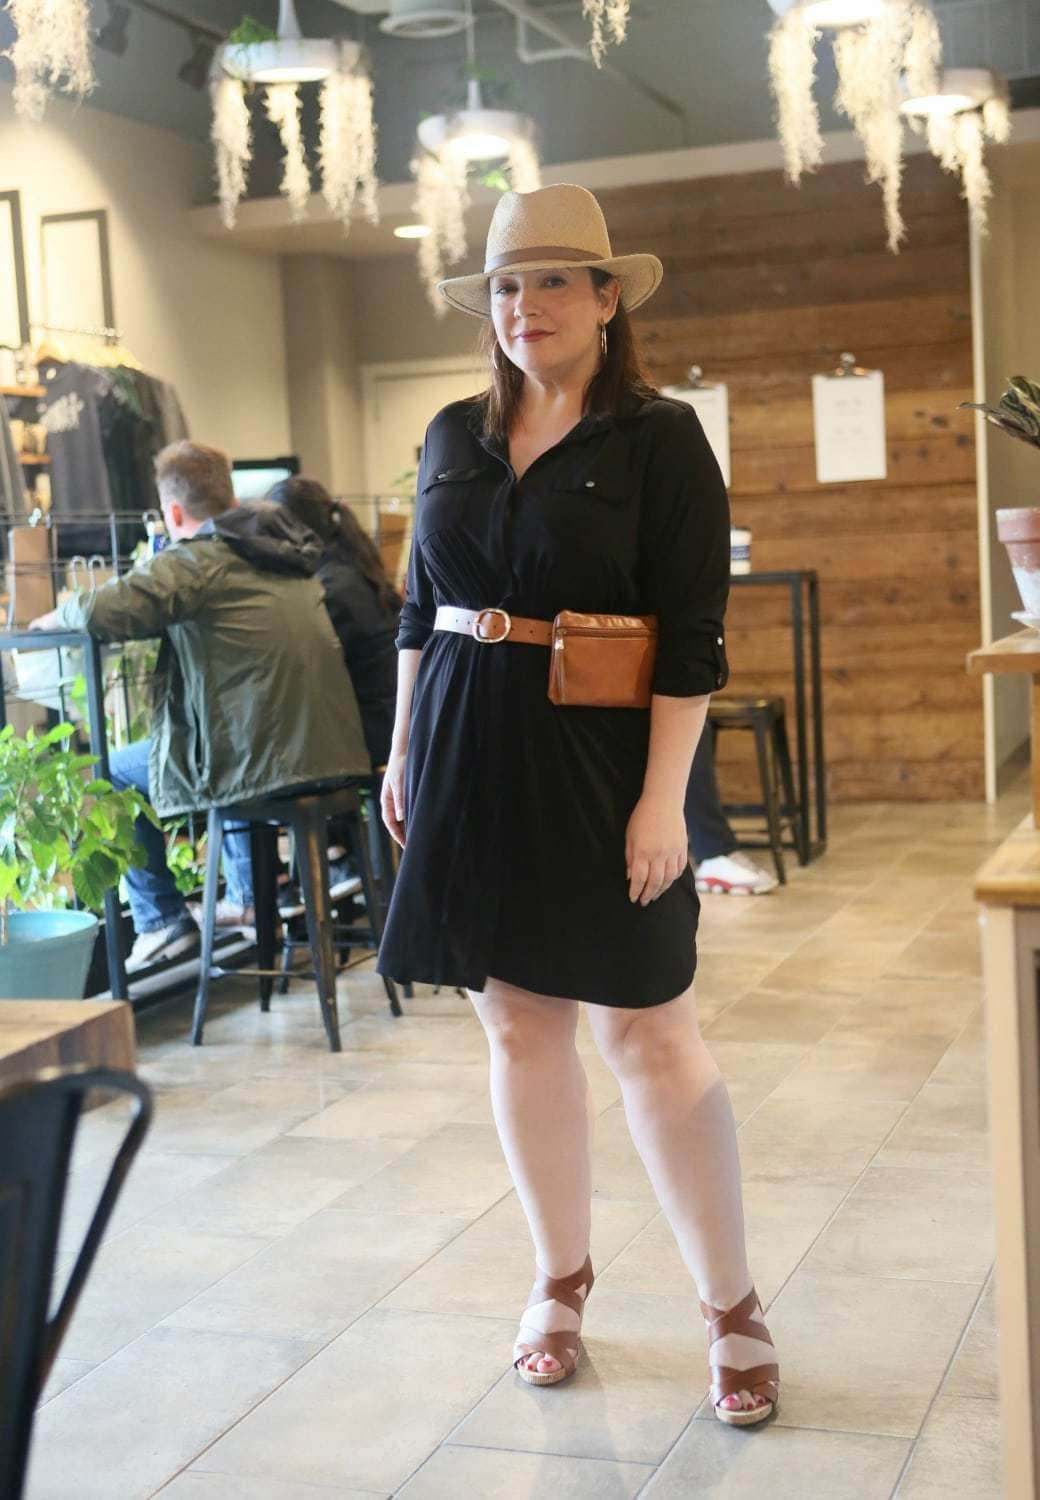 Black petite plus size shirtdress from NY Collection via Macy's as seen on Wardrobe Oxygen - Summer Travel Style with Macy's x NY Collection featured by popular Washington DC petite fashion blogger, Wardrobe Oxygen